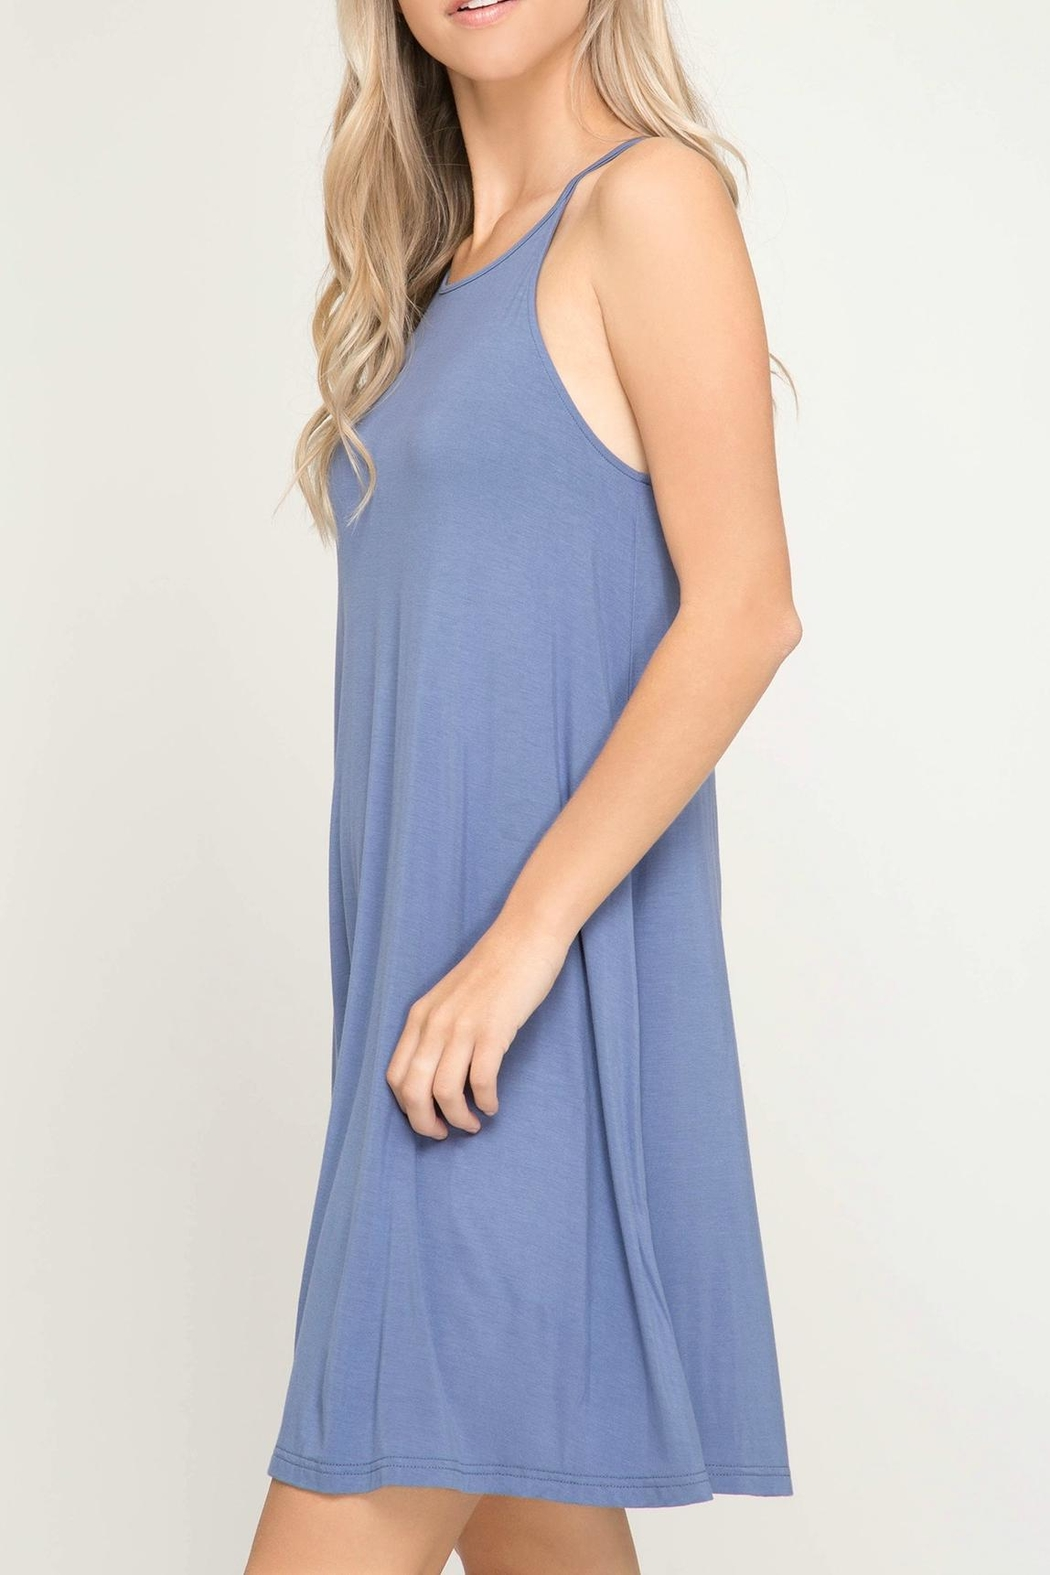 She + Sky Halter Knit Dress - Front Full Image